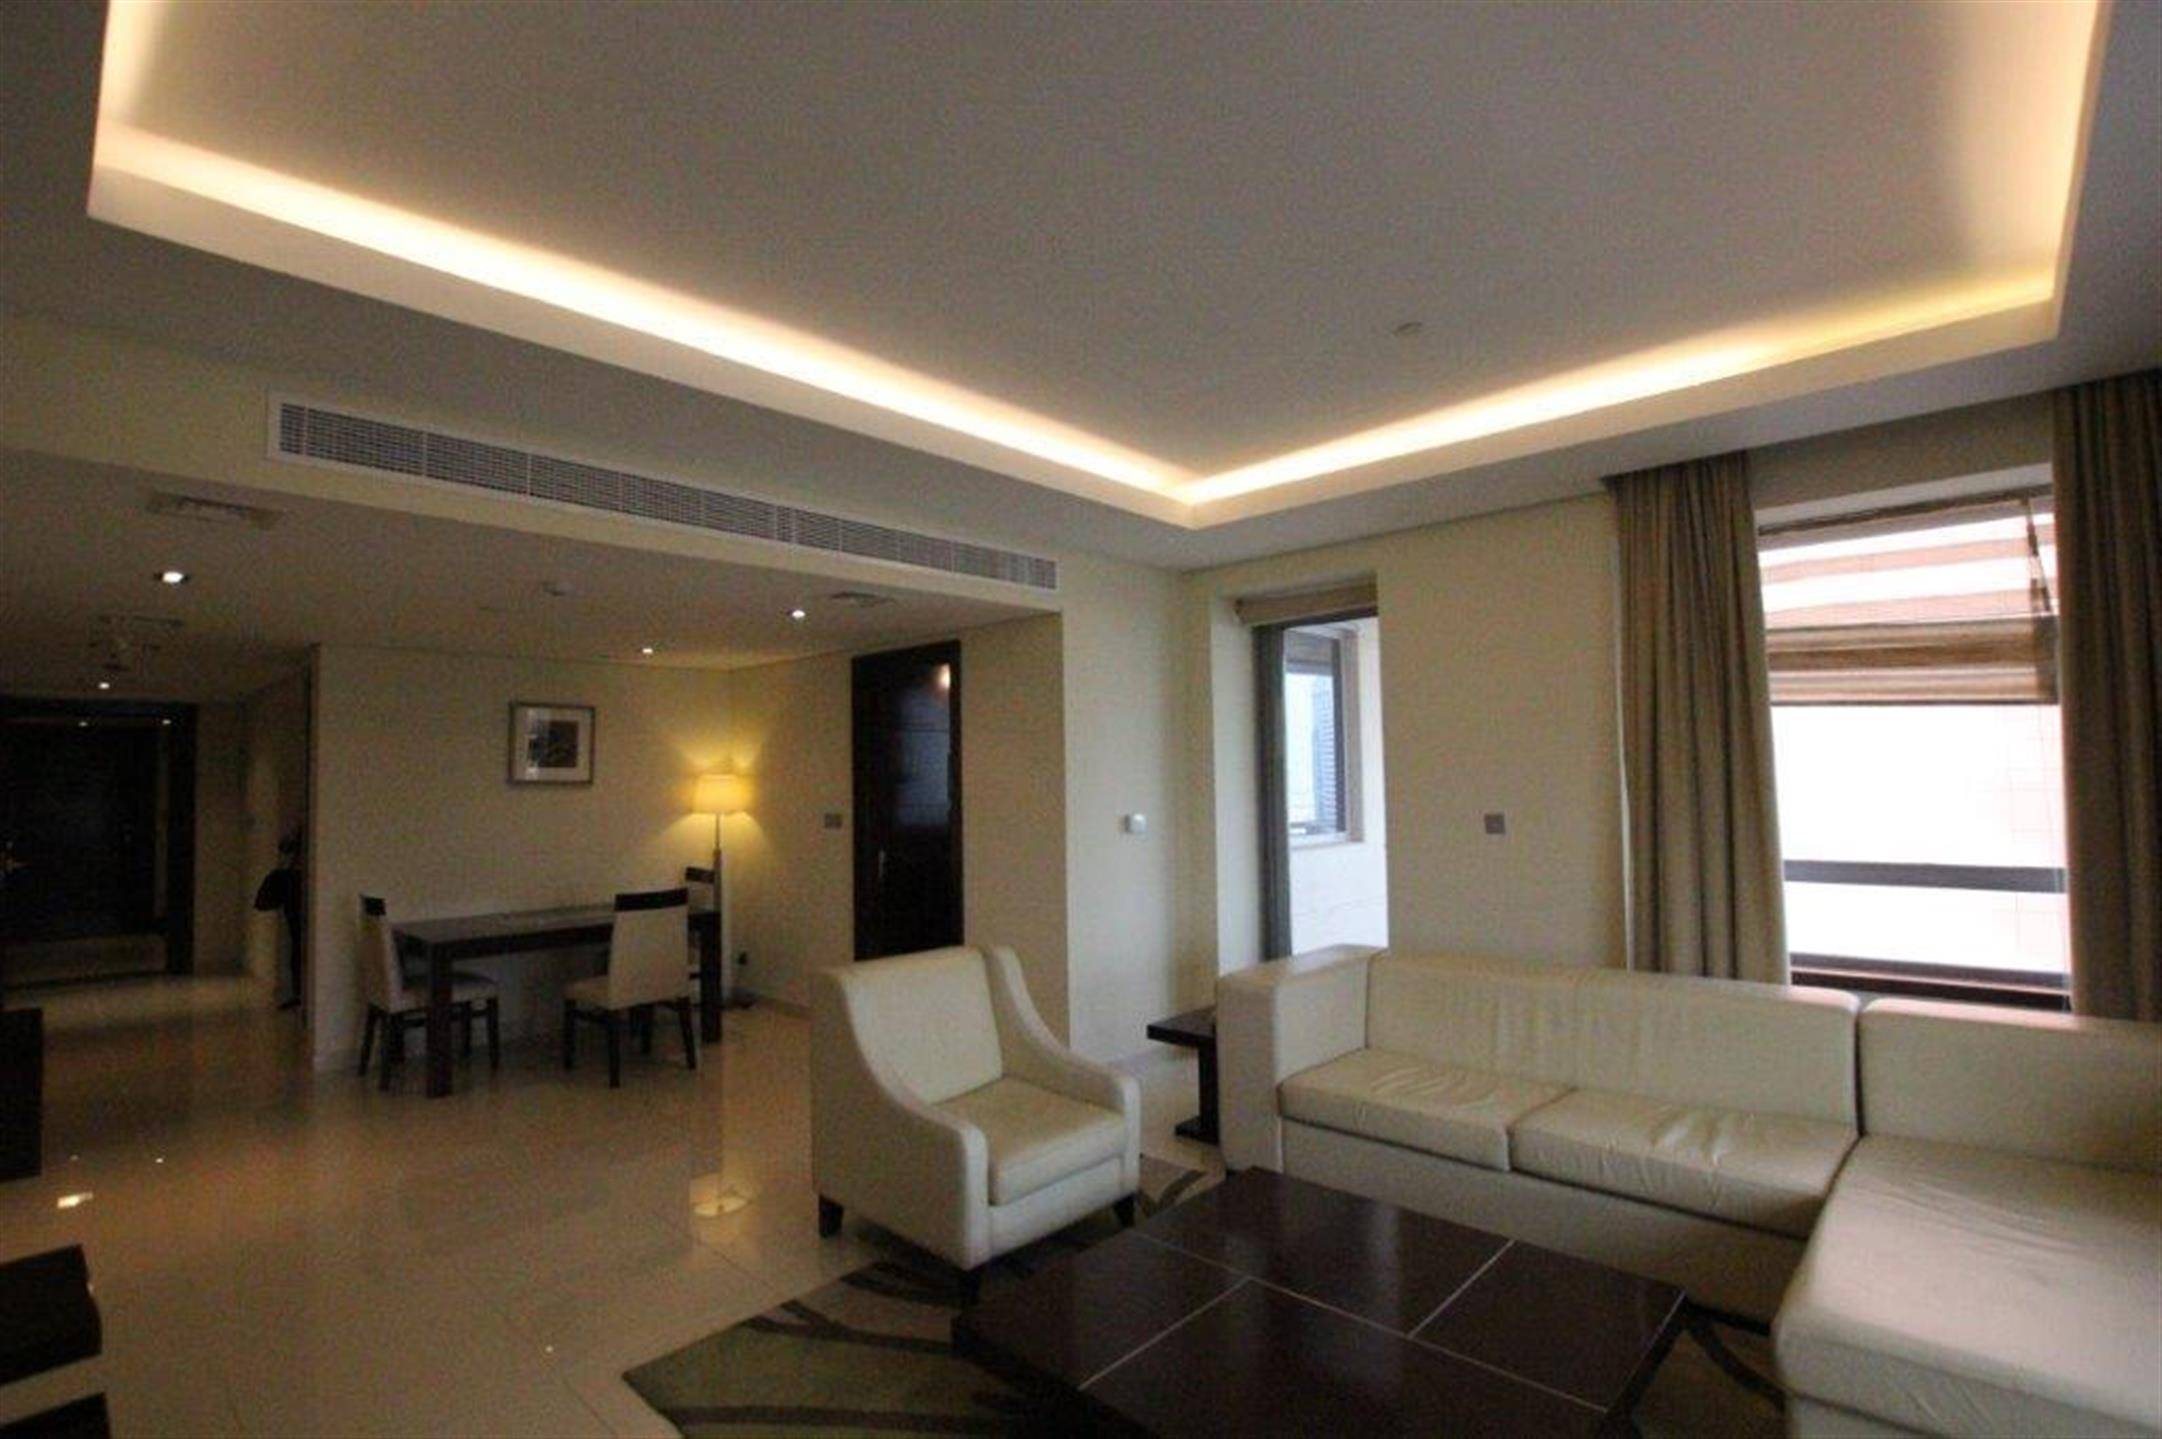 Luxurious 4 Star 2br Hotel Apartment In Media City